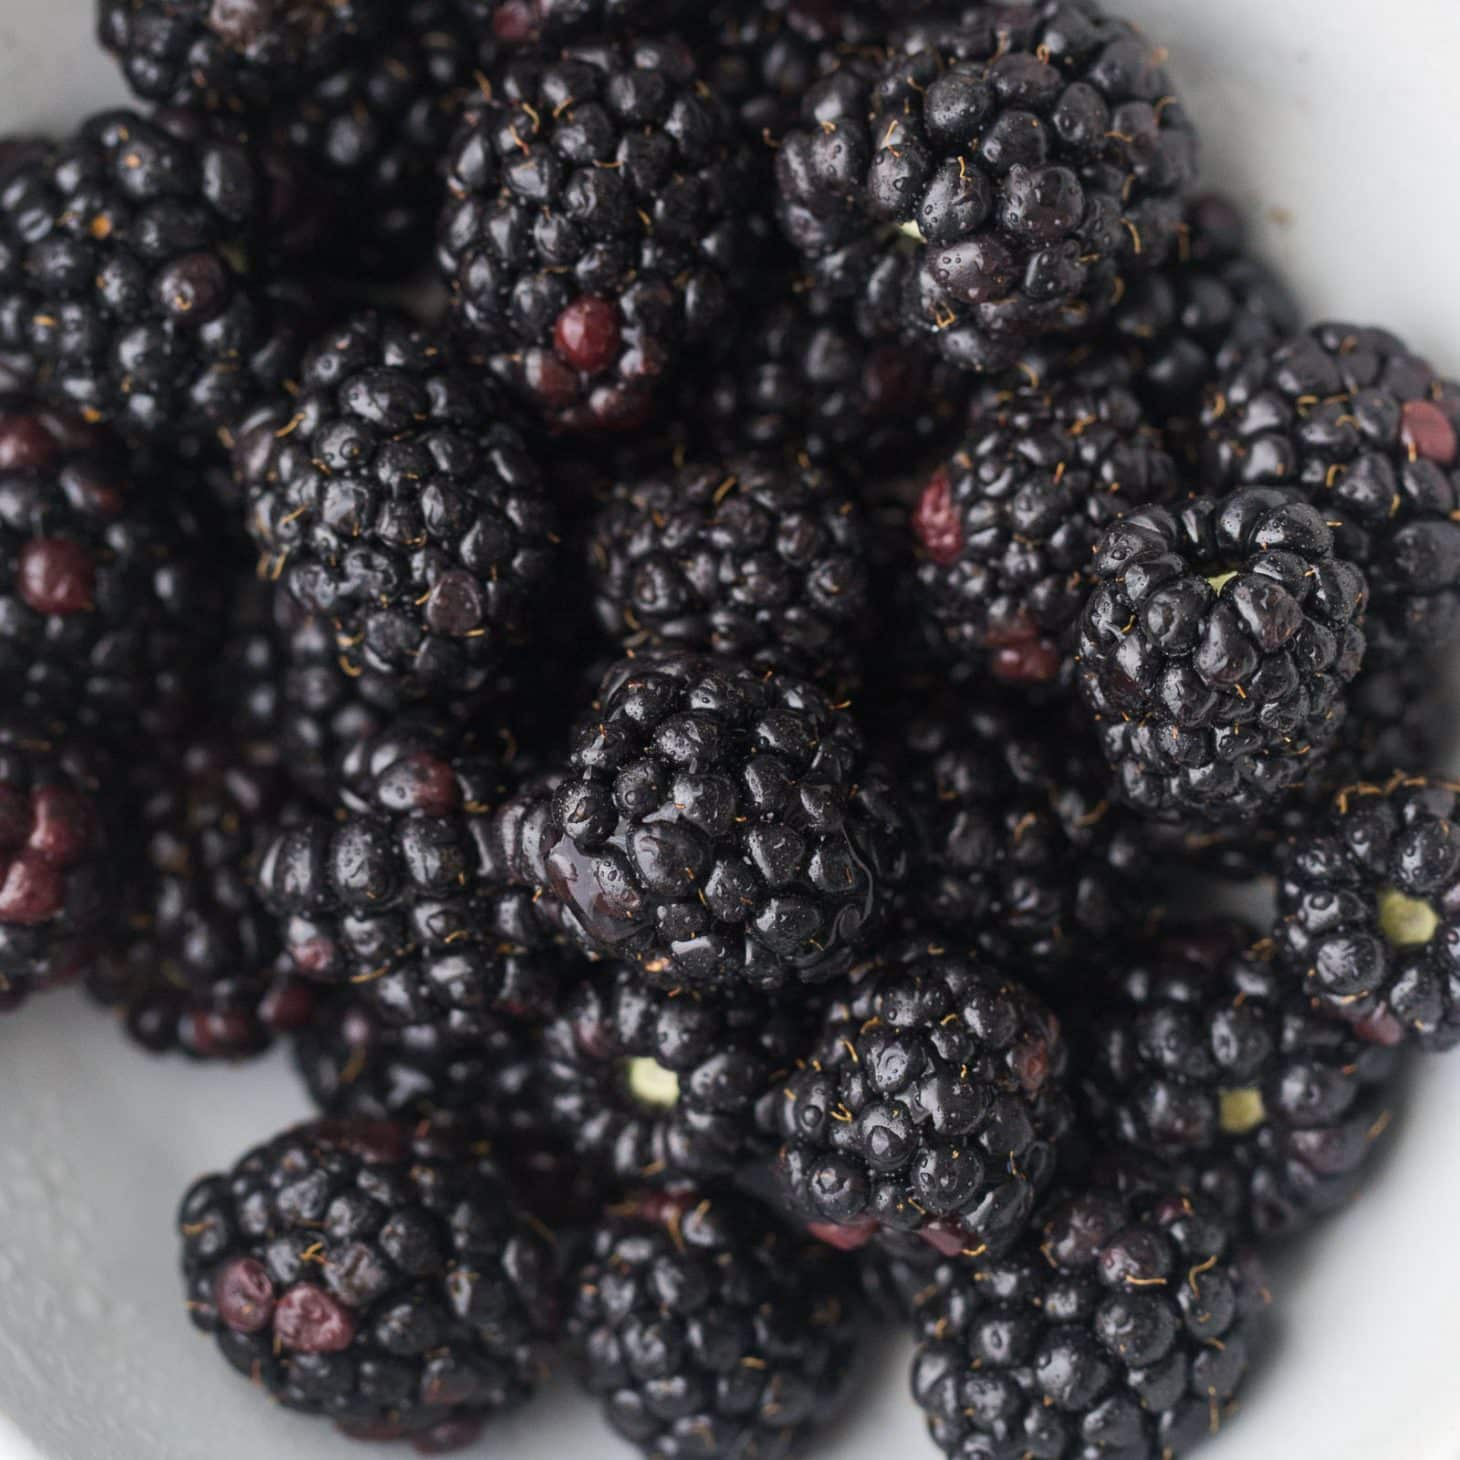 Blackberries | Explore an Ingredient